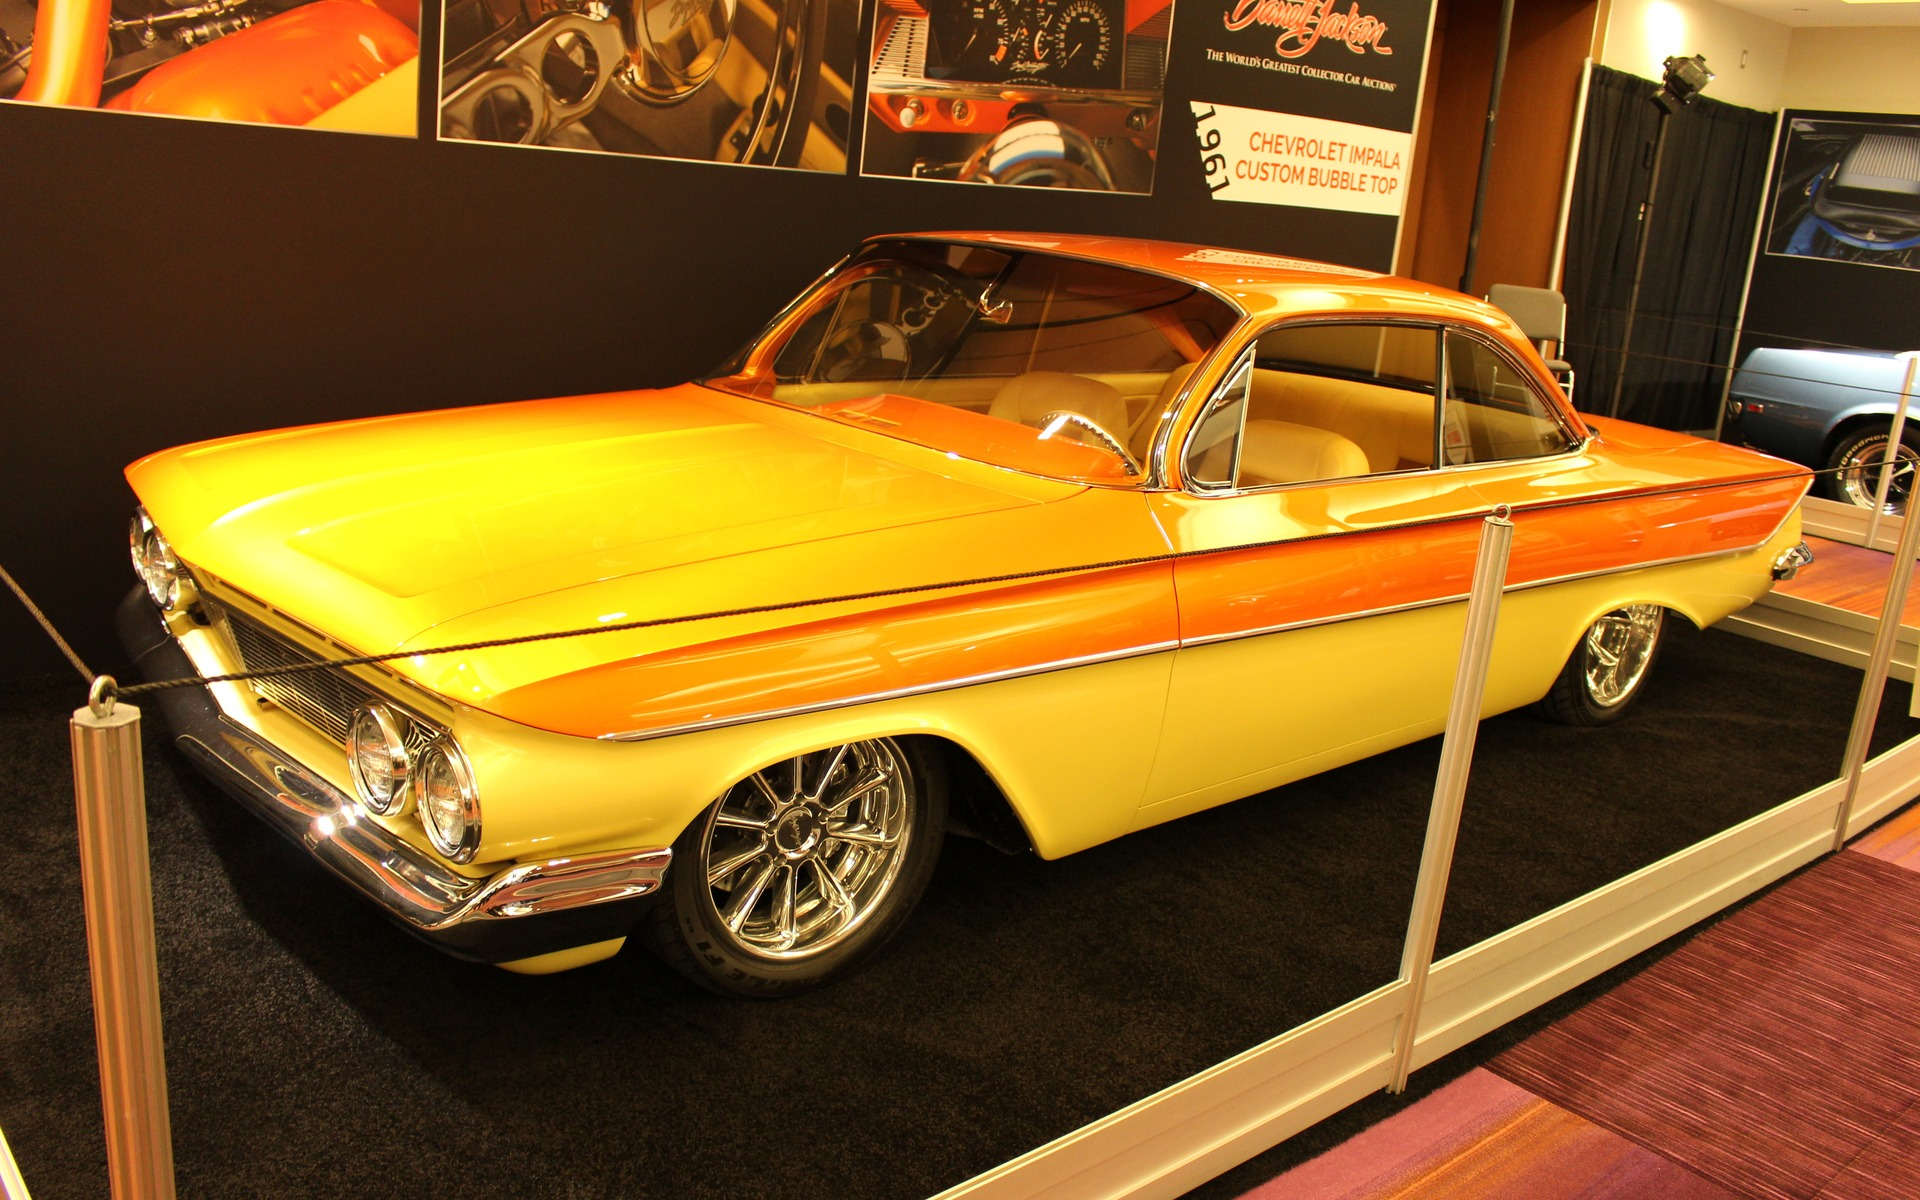 <p>1961 Chevrolet Impala Boyd Coddington Custom Bubble Top</p>